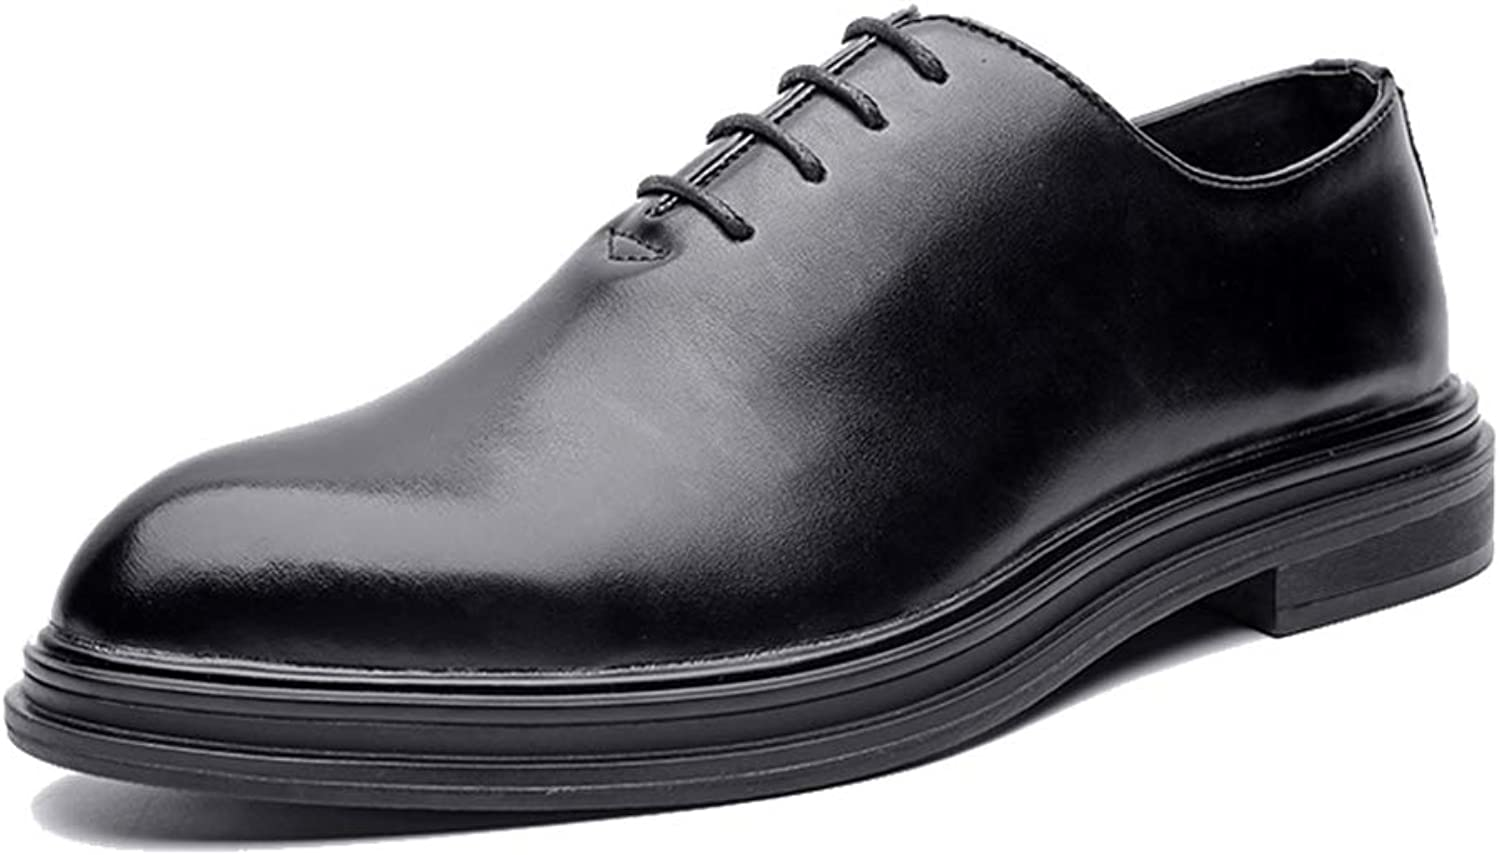 Men's Business Oxford Casual Classic Solid color Gentleman Style Formal shoes (color   Black, Size   5.5 UK)